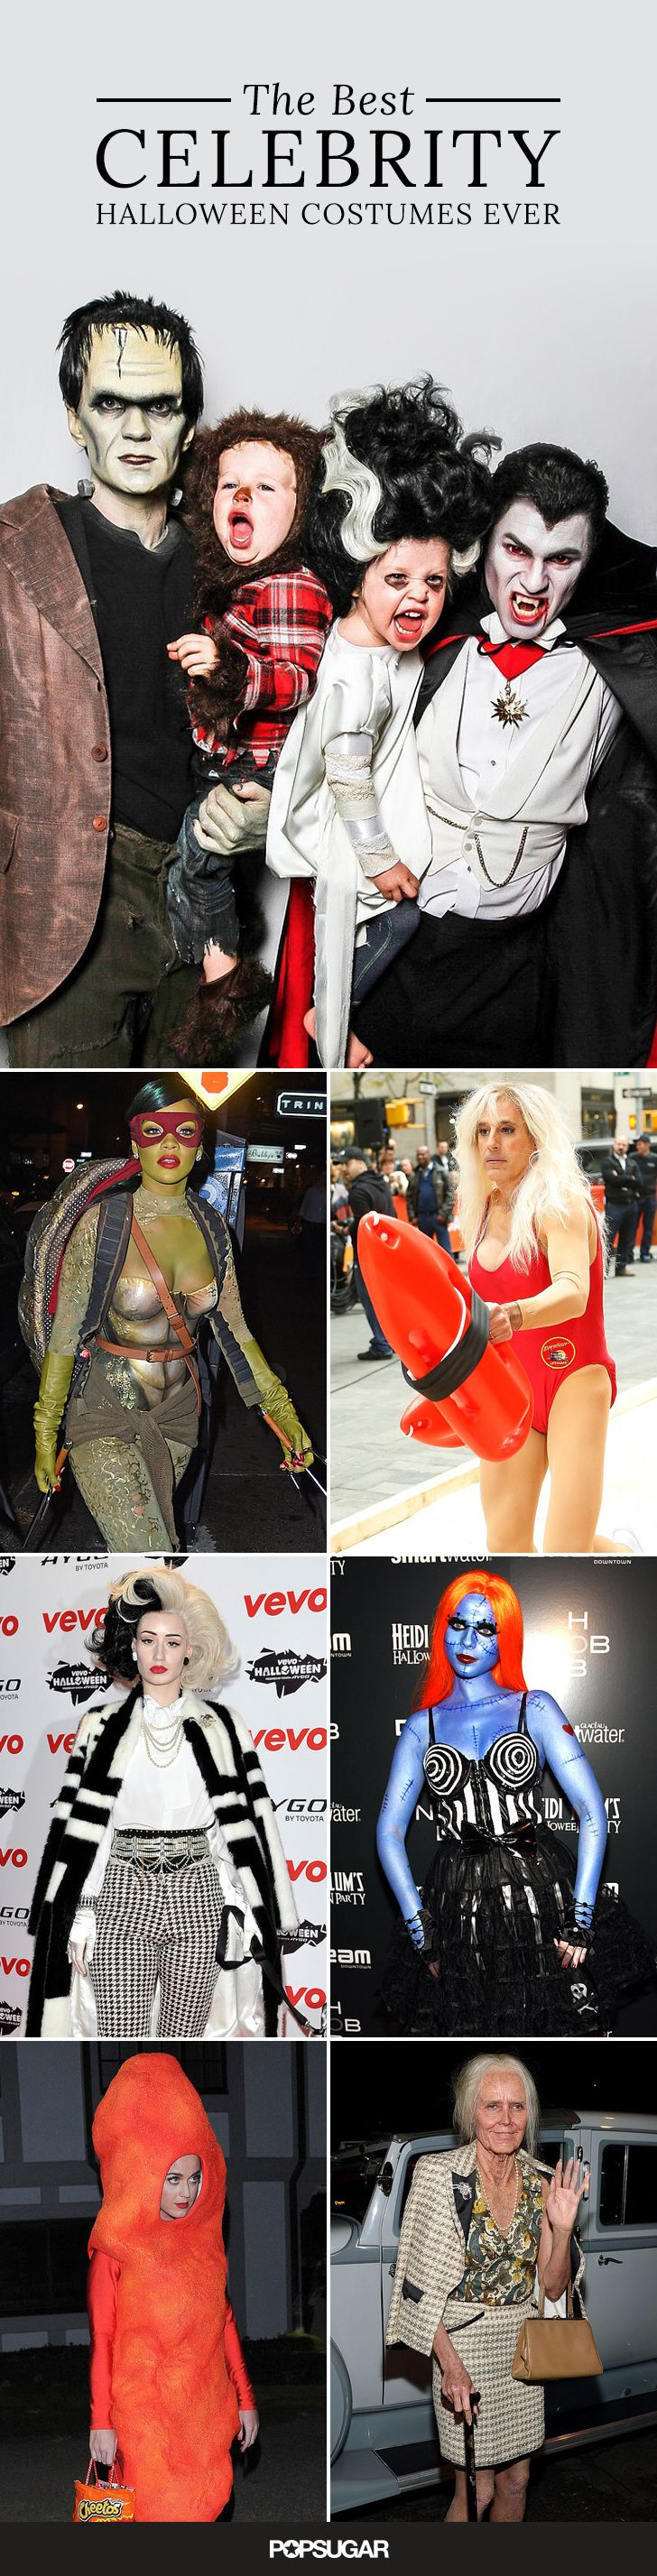 Some celebrities really don't hold back when it comes to creative Halloween costumes! Get inspiration and ideas from the stars with a look at the BEST celebrity Halloween costumes!